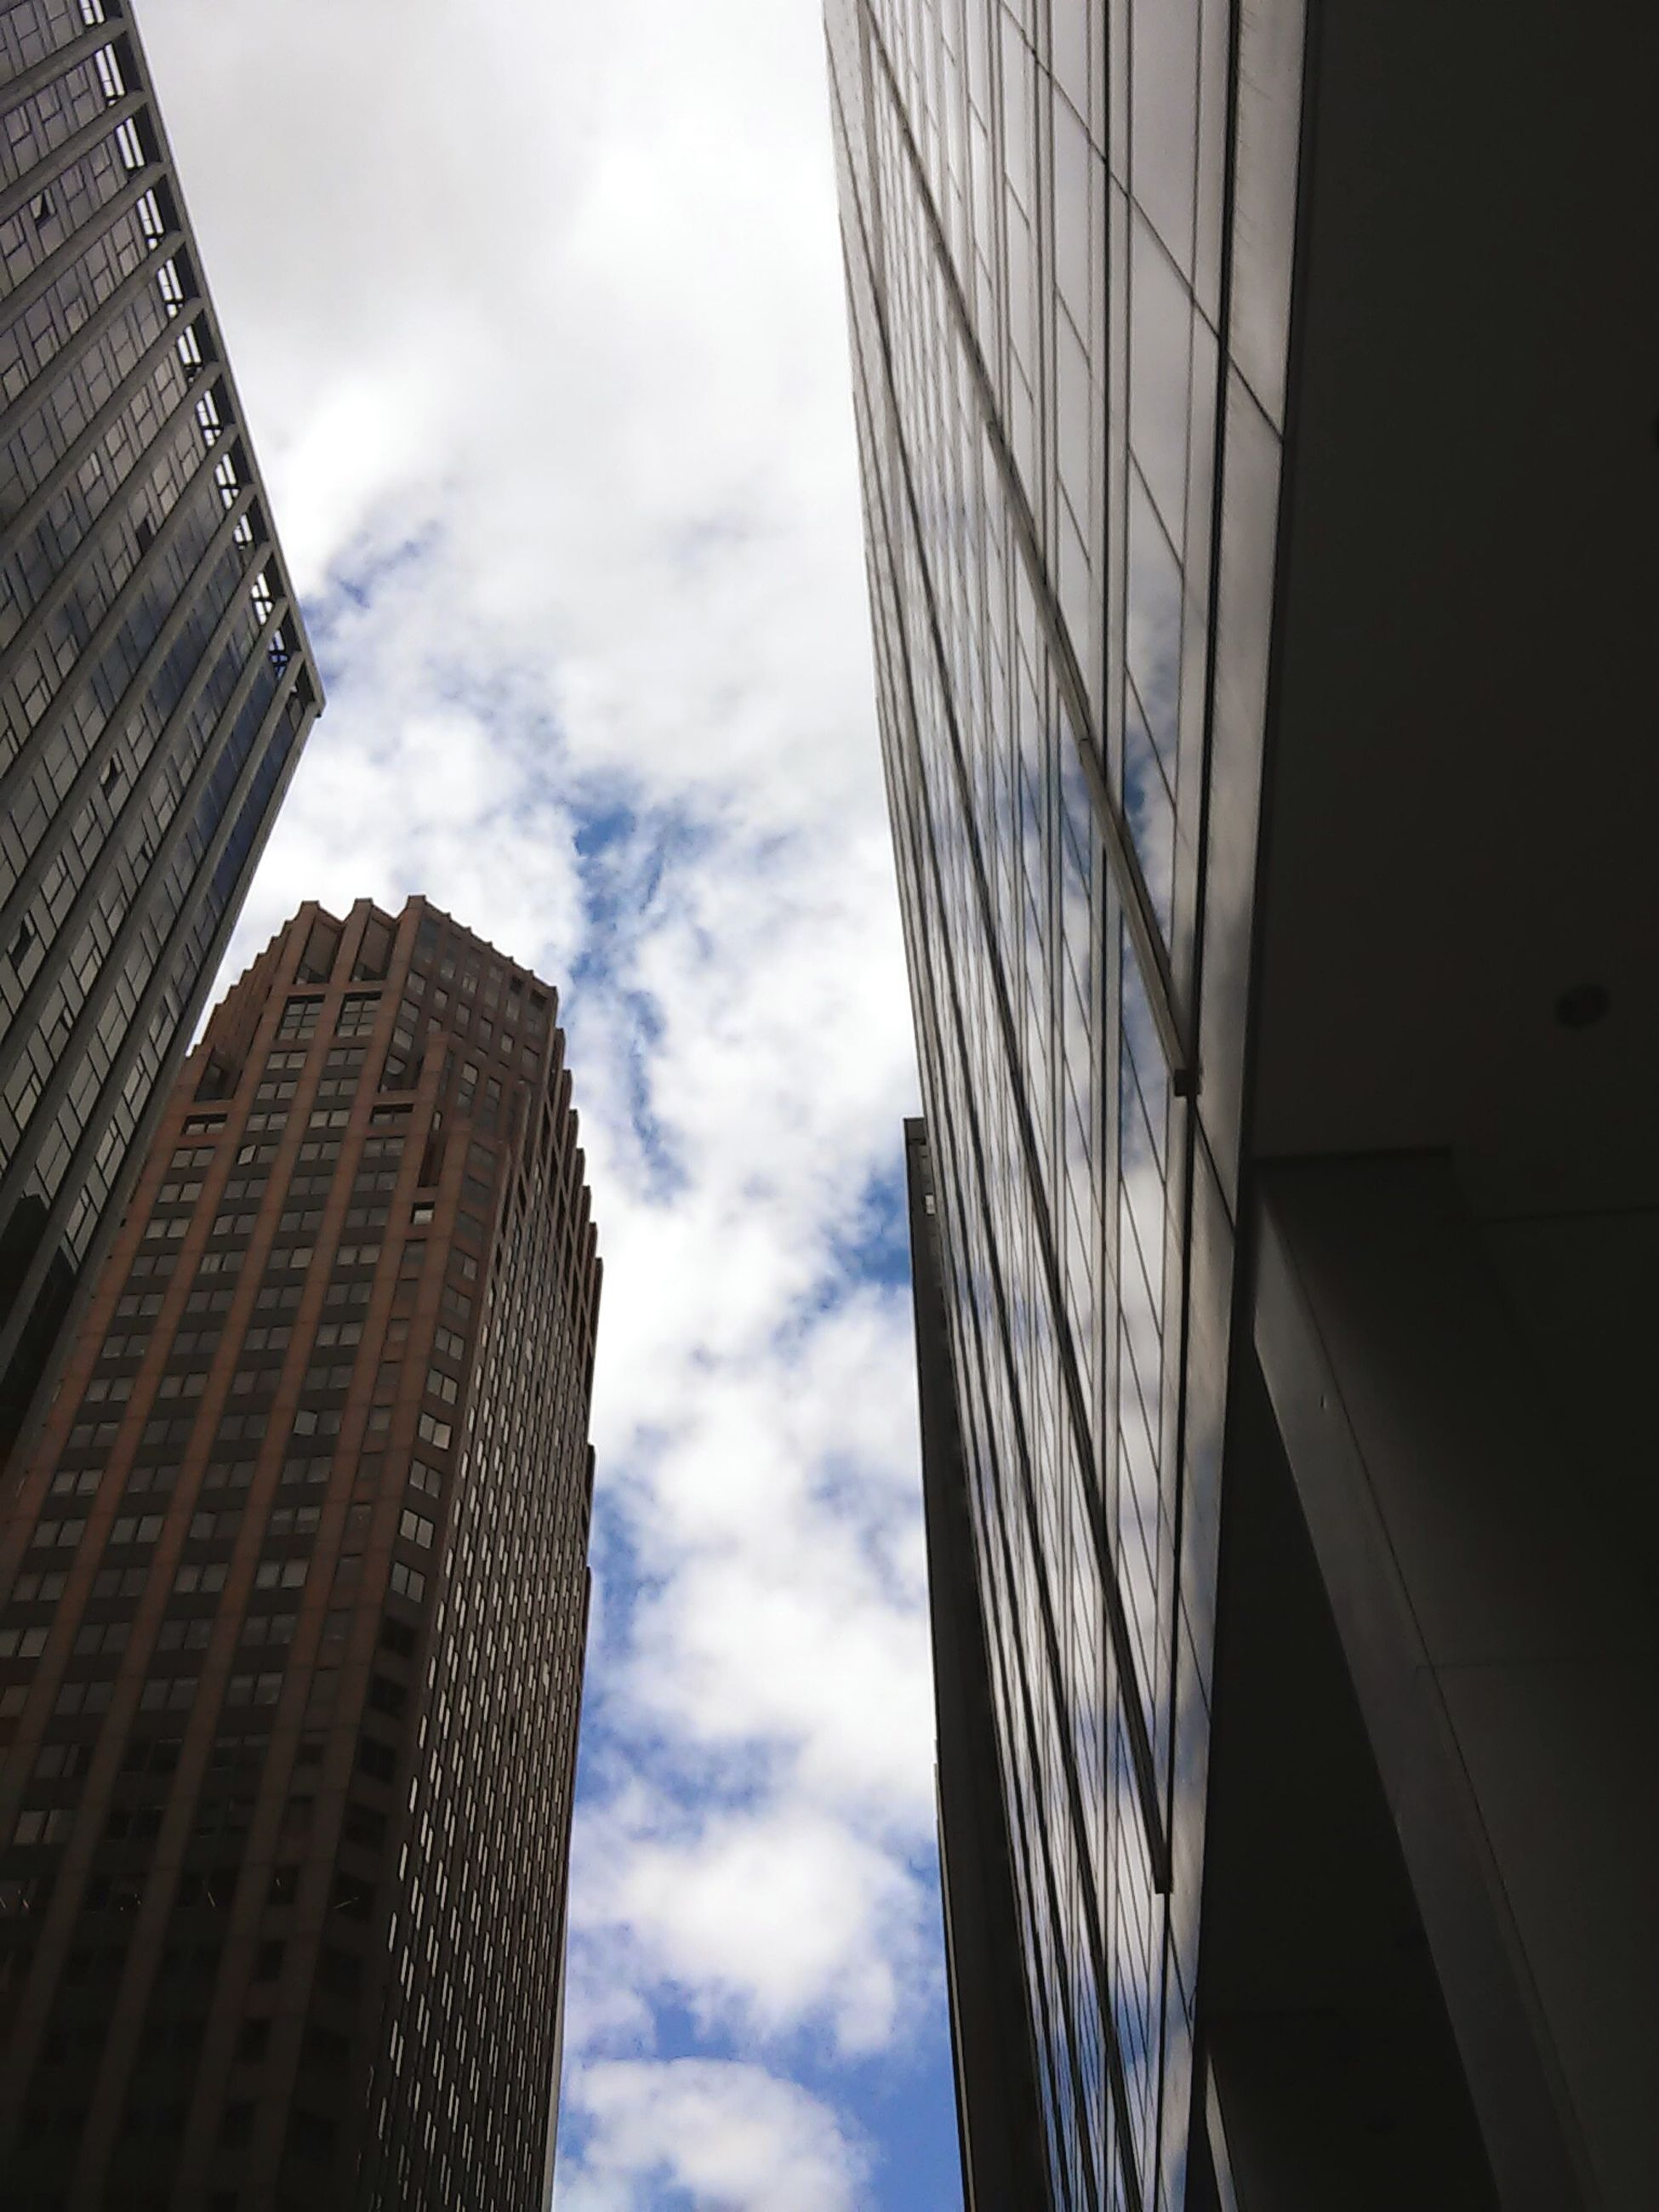 sky, architecture, skyscraper, modern, low angle view, tall, building exterior, cloud - sky, no people, built structure, growth, day, outdoors, city